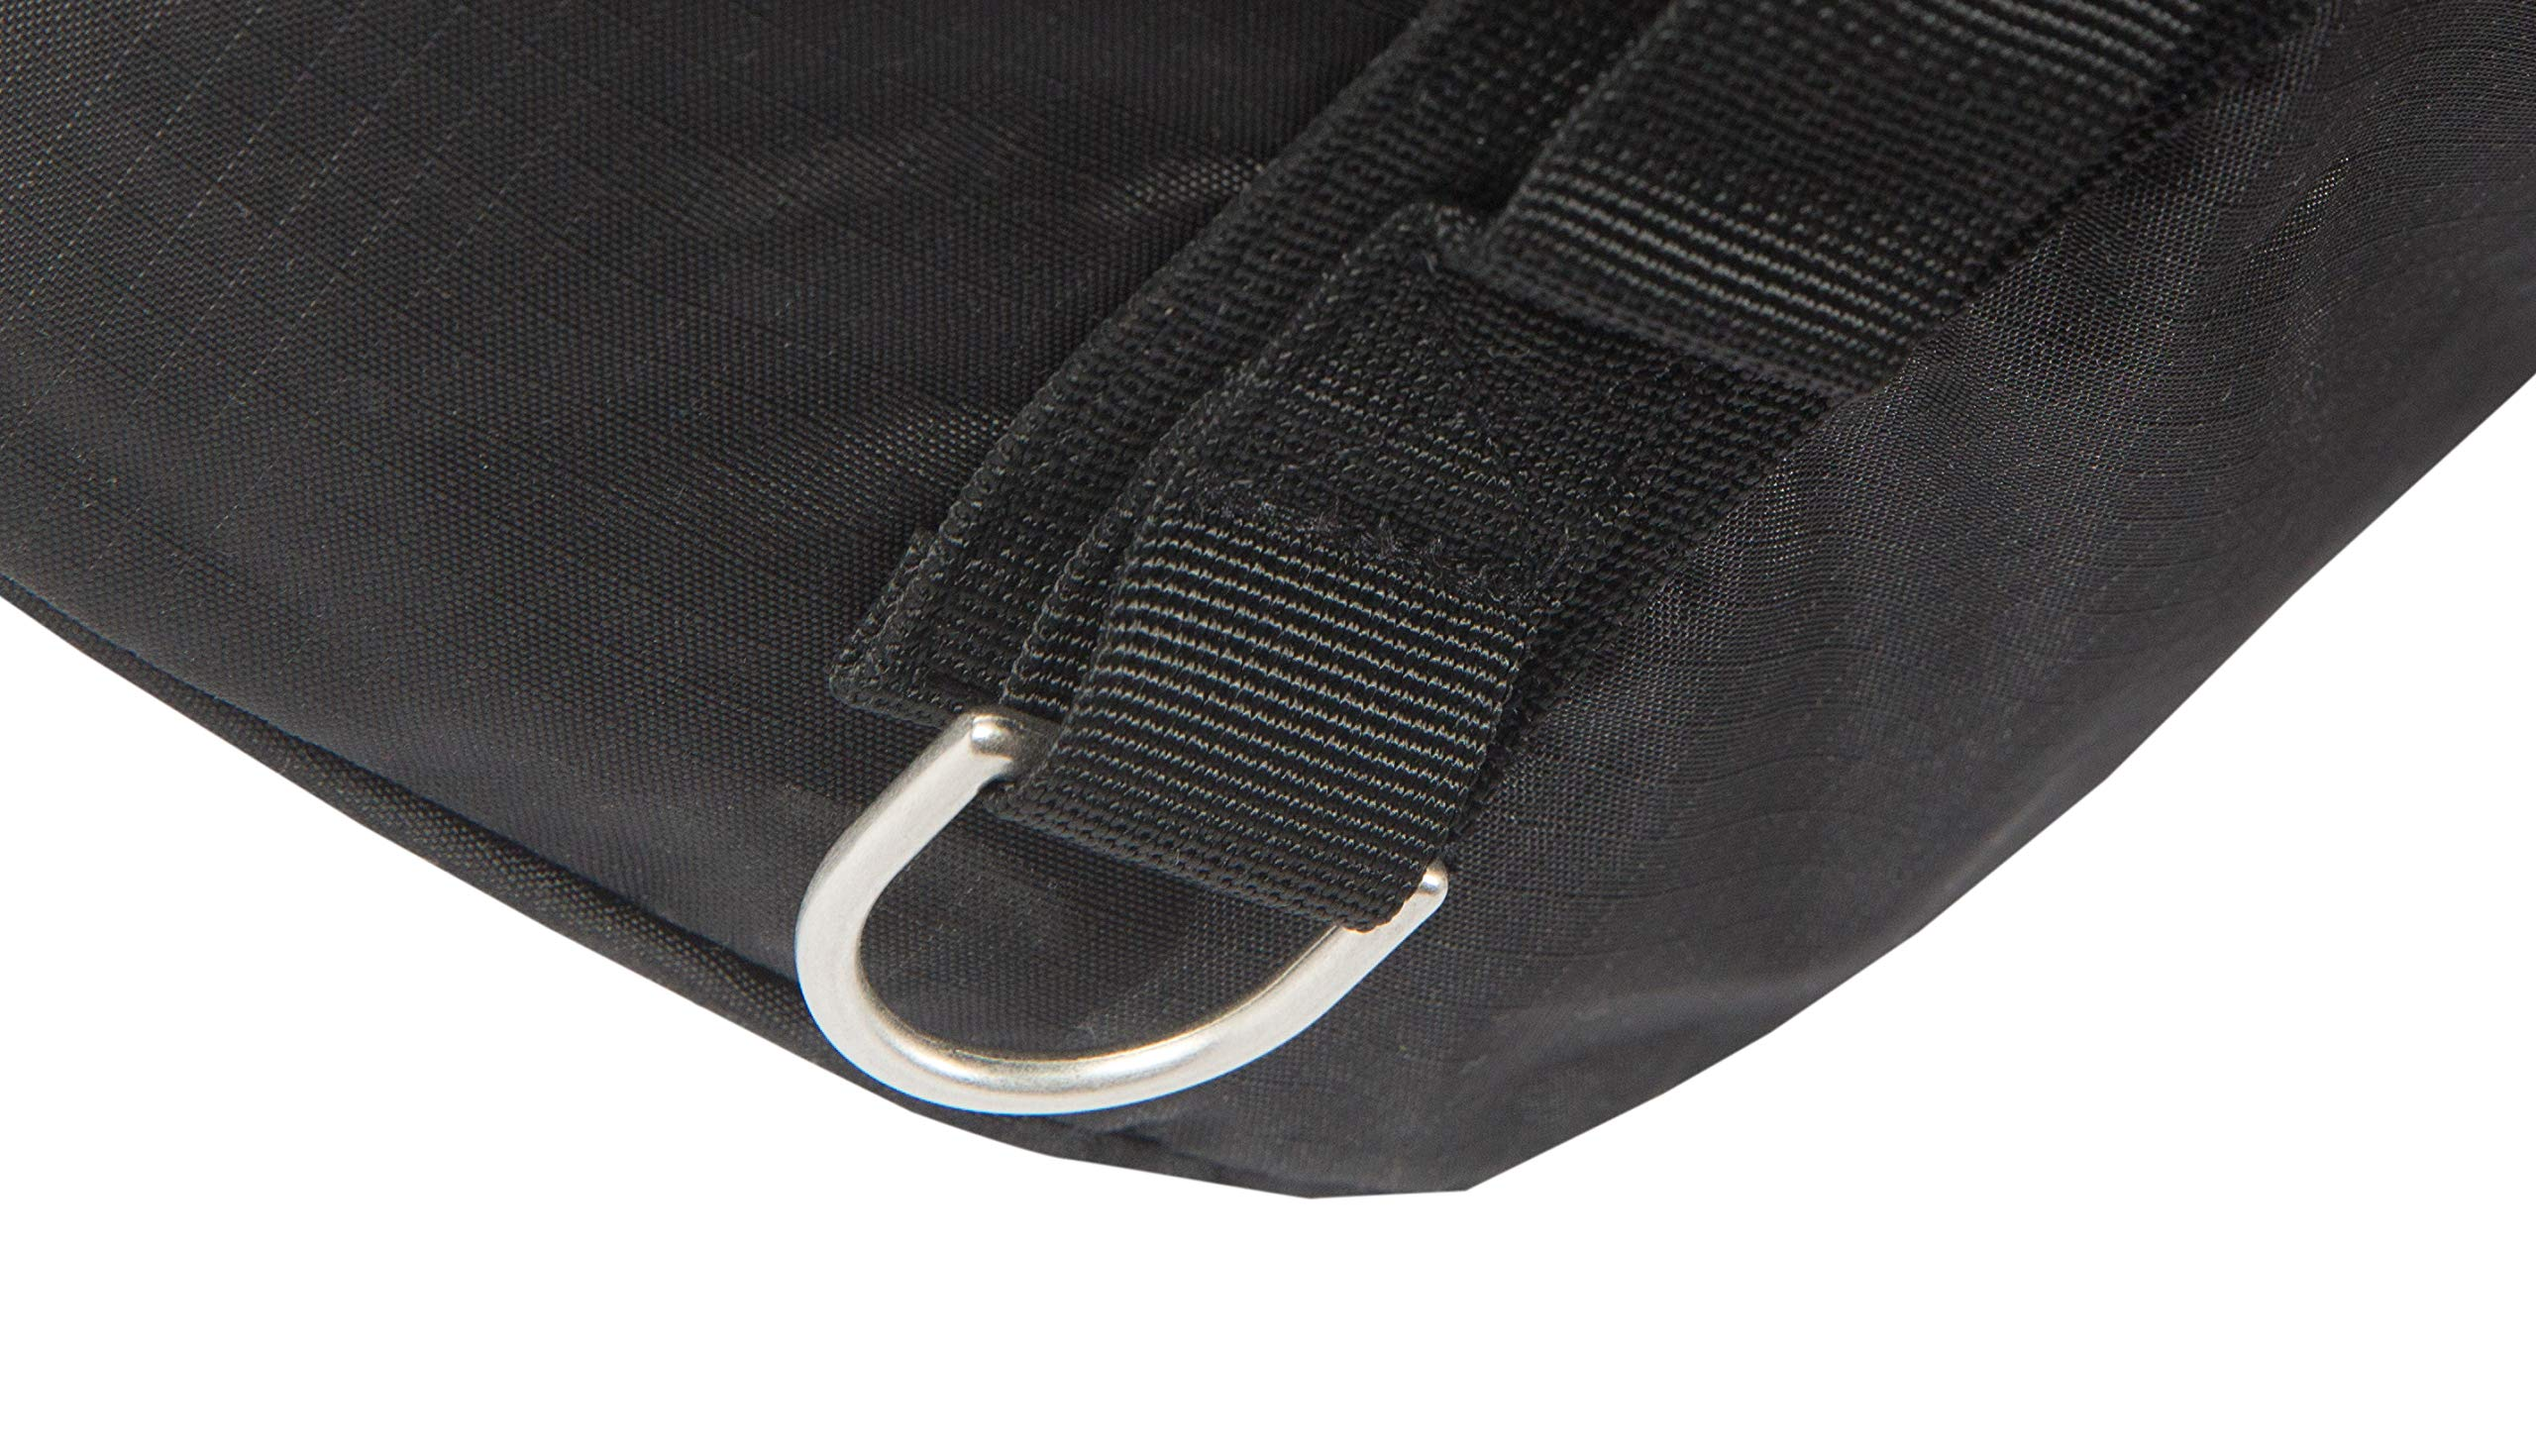 f-stop - Medium Tripod Bag, Fits up to 35'' by f-stop (Image #3)